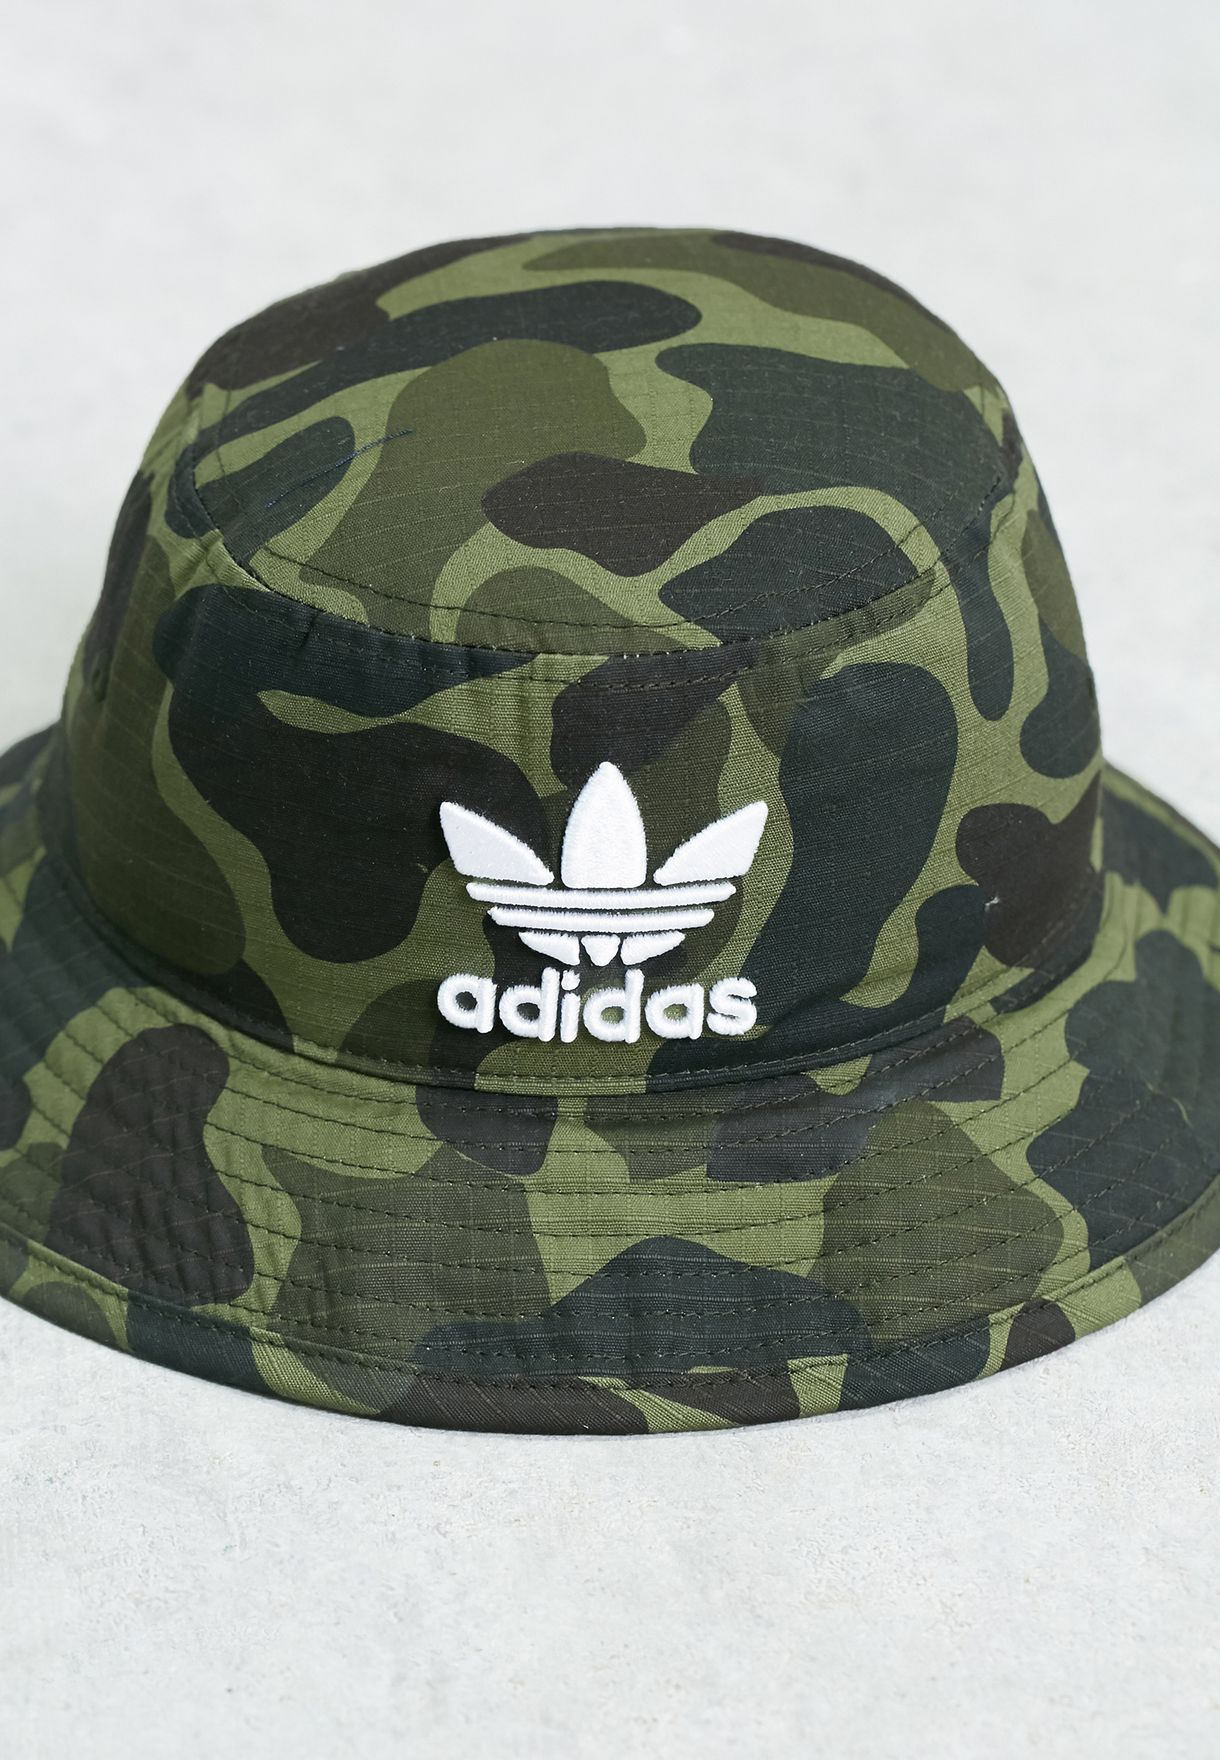 52a708592a2 Shop adidas Originals prints Camo Bucket Hat BK7618 for Men in ...